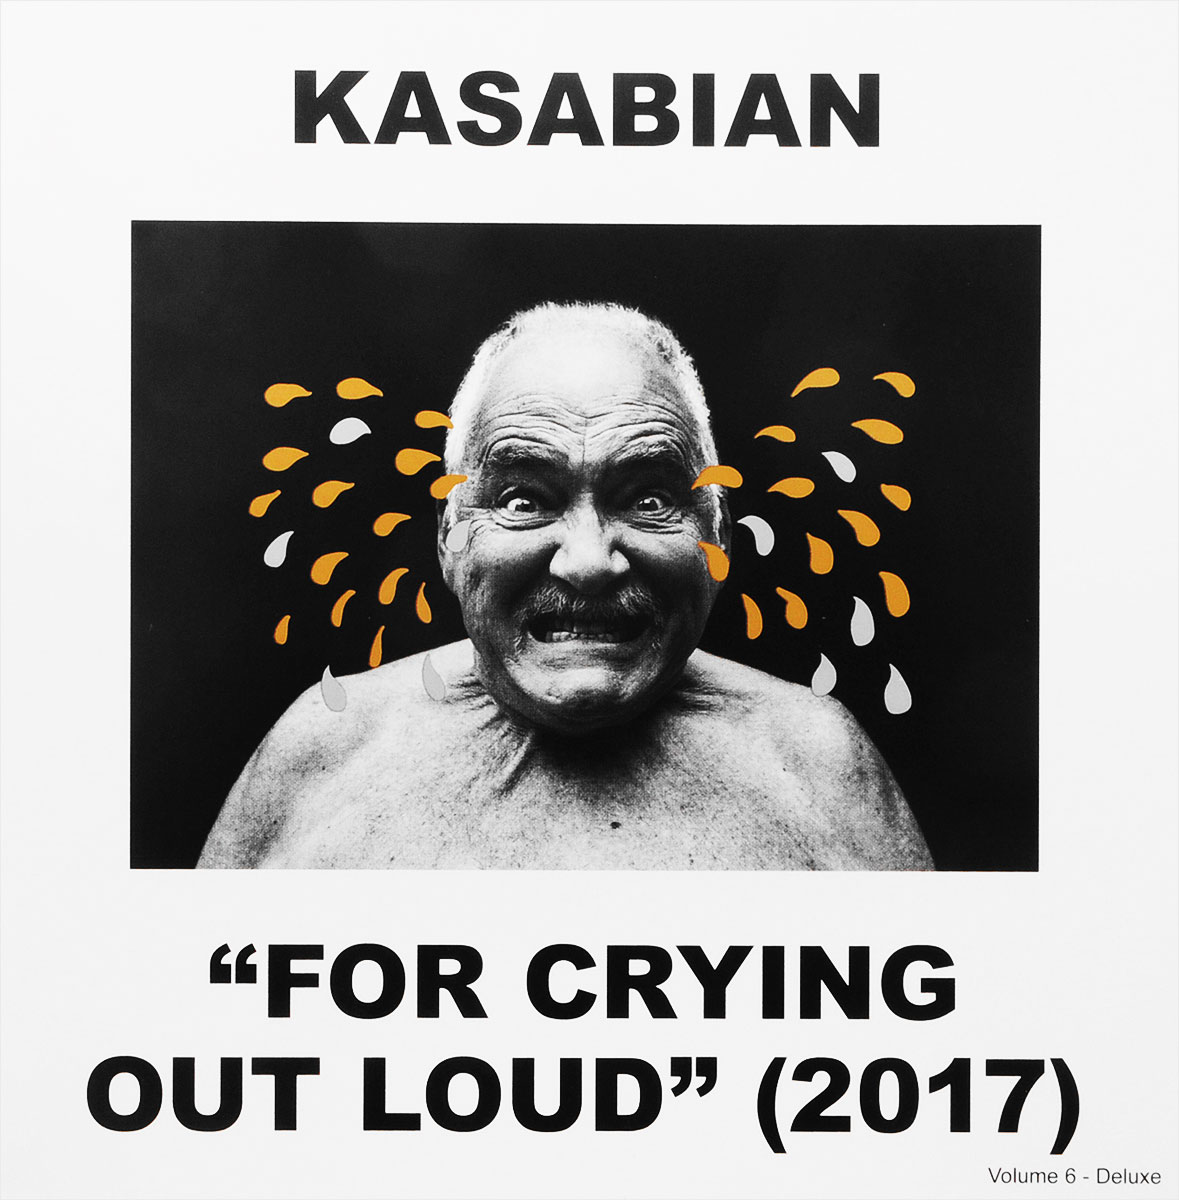 Kasabian Kasabian. For Crying Out Loud. Deluxe Edition (2 CD) roxy music roxy music the studio albums limited edition 8 lp